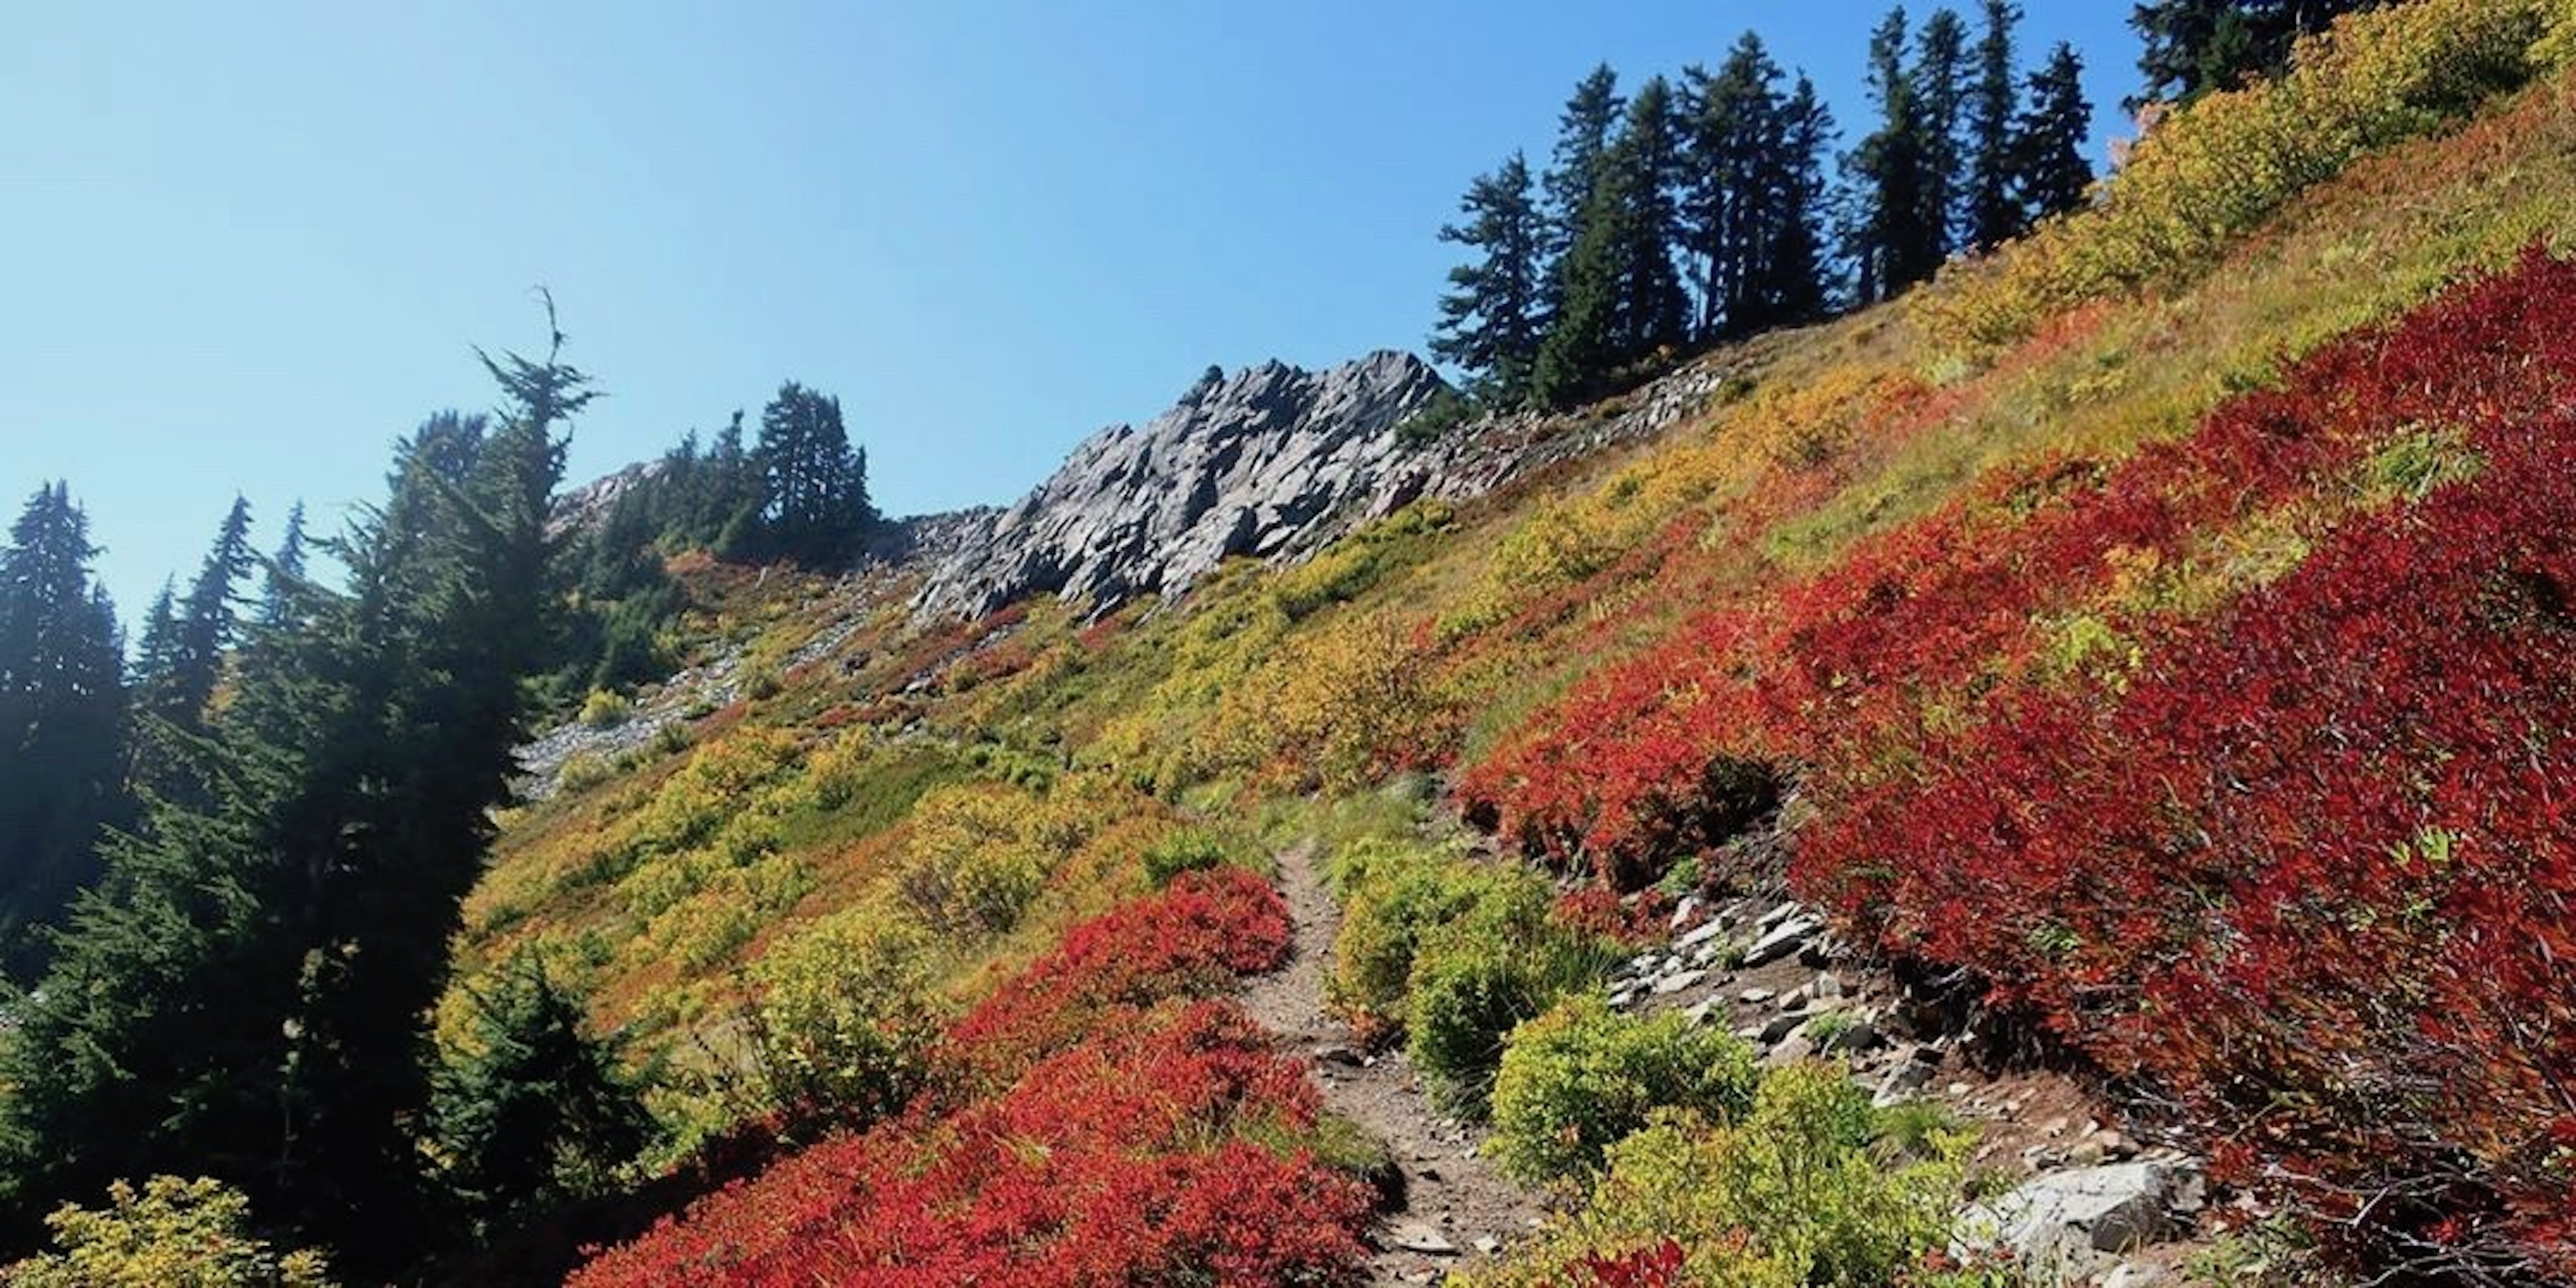 This Week's Top Instagram Posts from the #PacificCrestTrail - The Trek